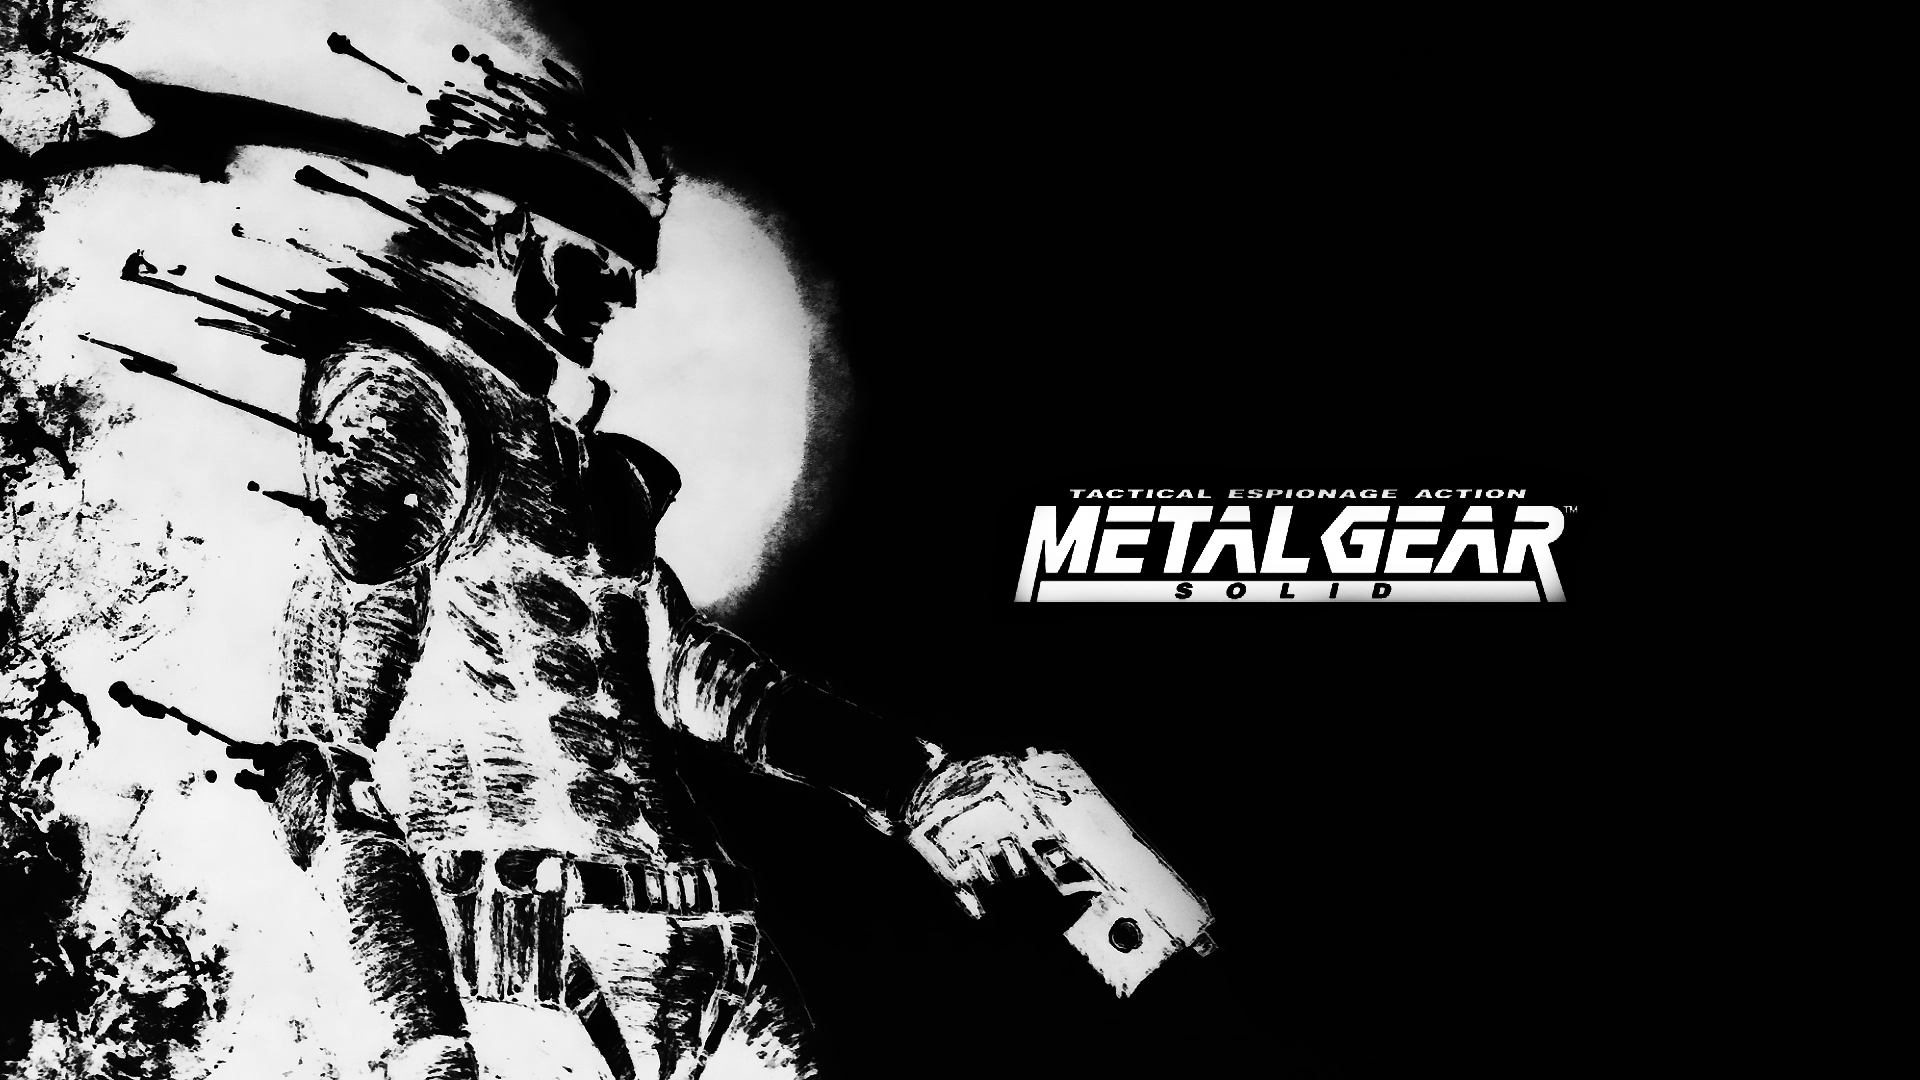 Metal gear solid wallpapers pictures images - Metal gear solid desktop wallpaper ...